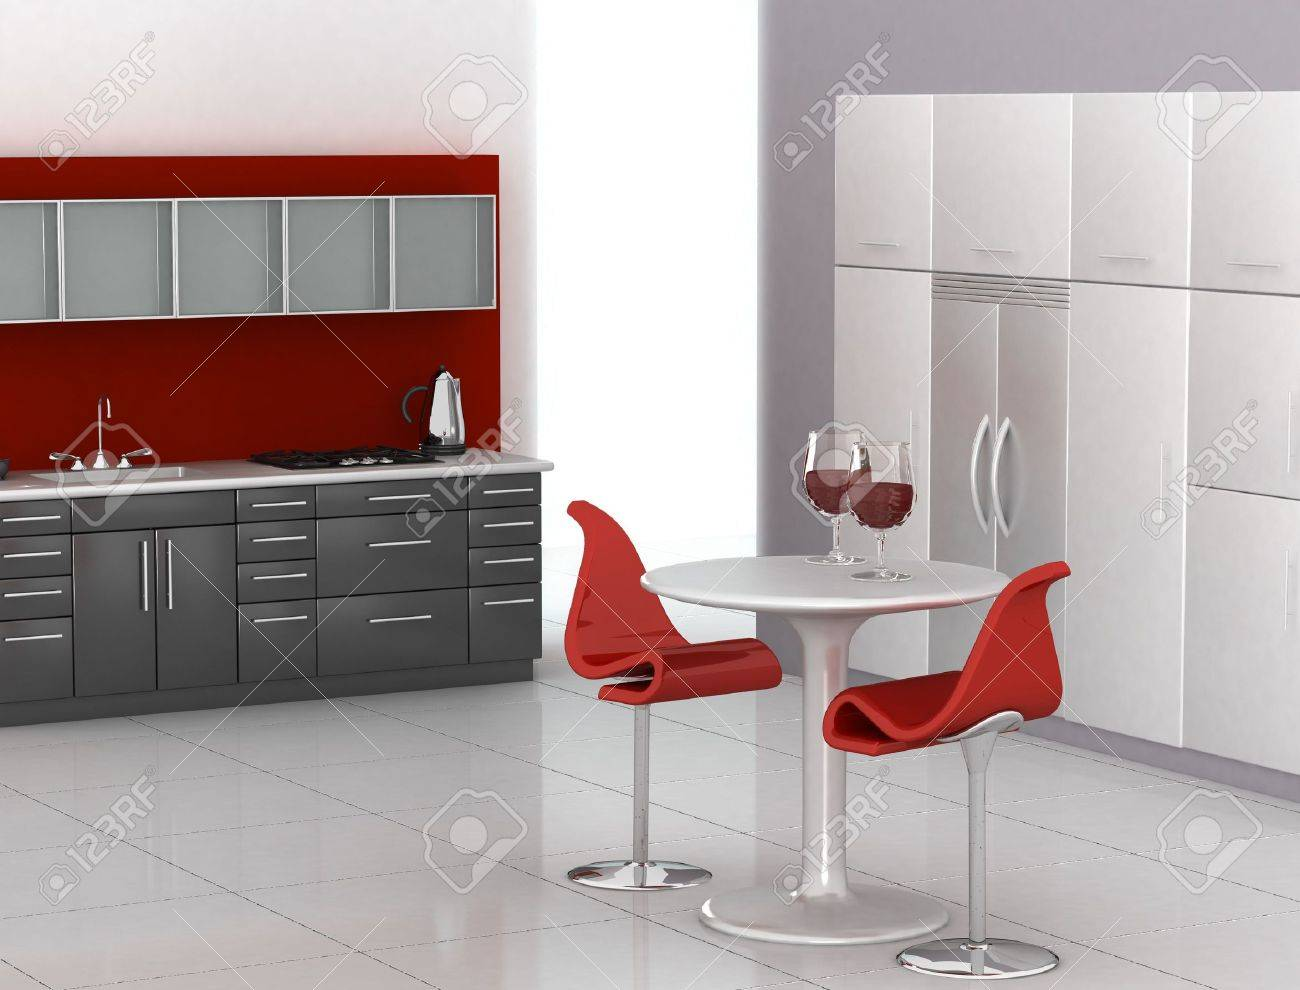 Modern Kitchen In Red Black And White Stock Photo Picture Royalty Free Image 903737